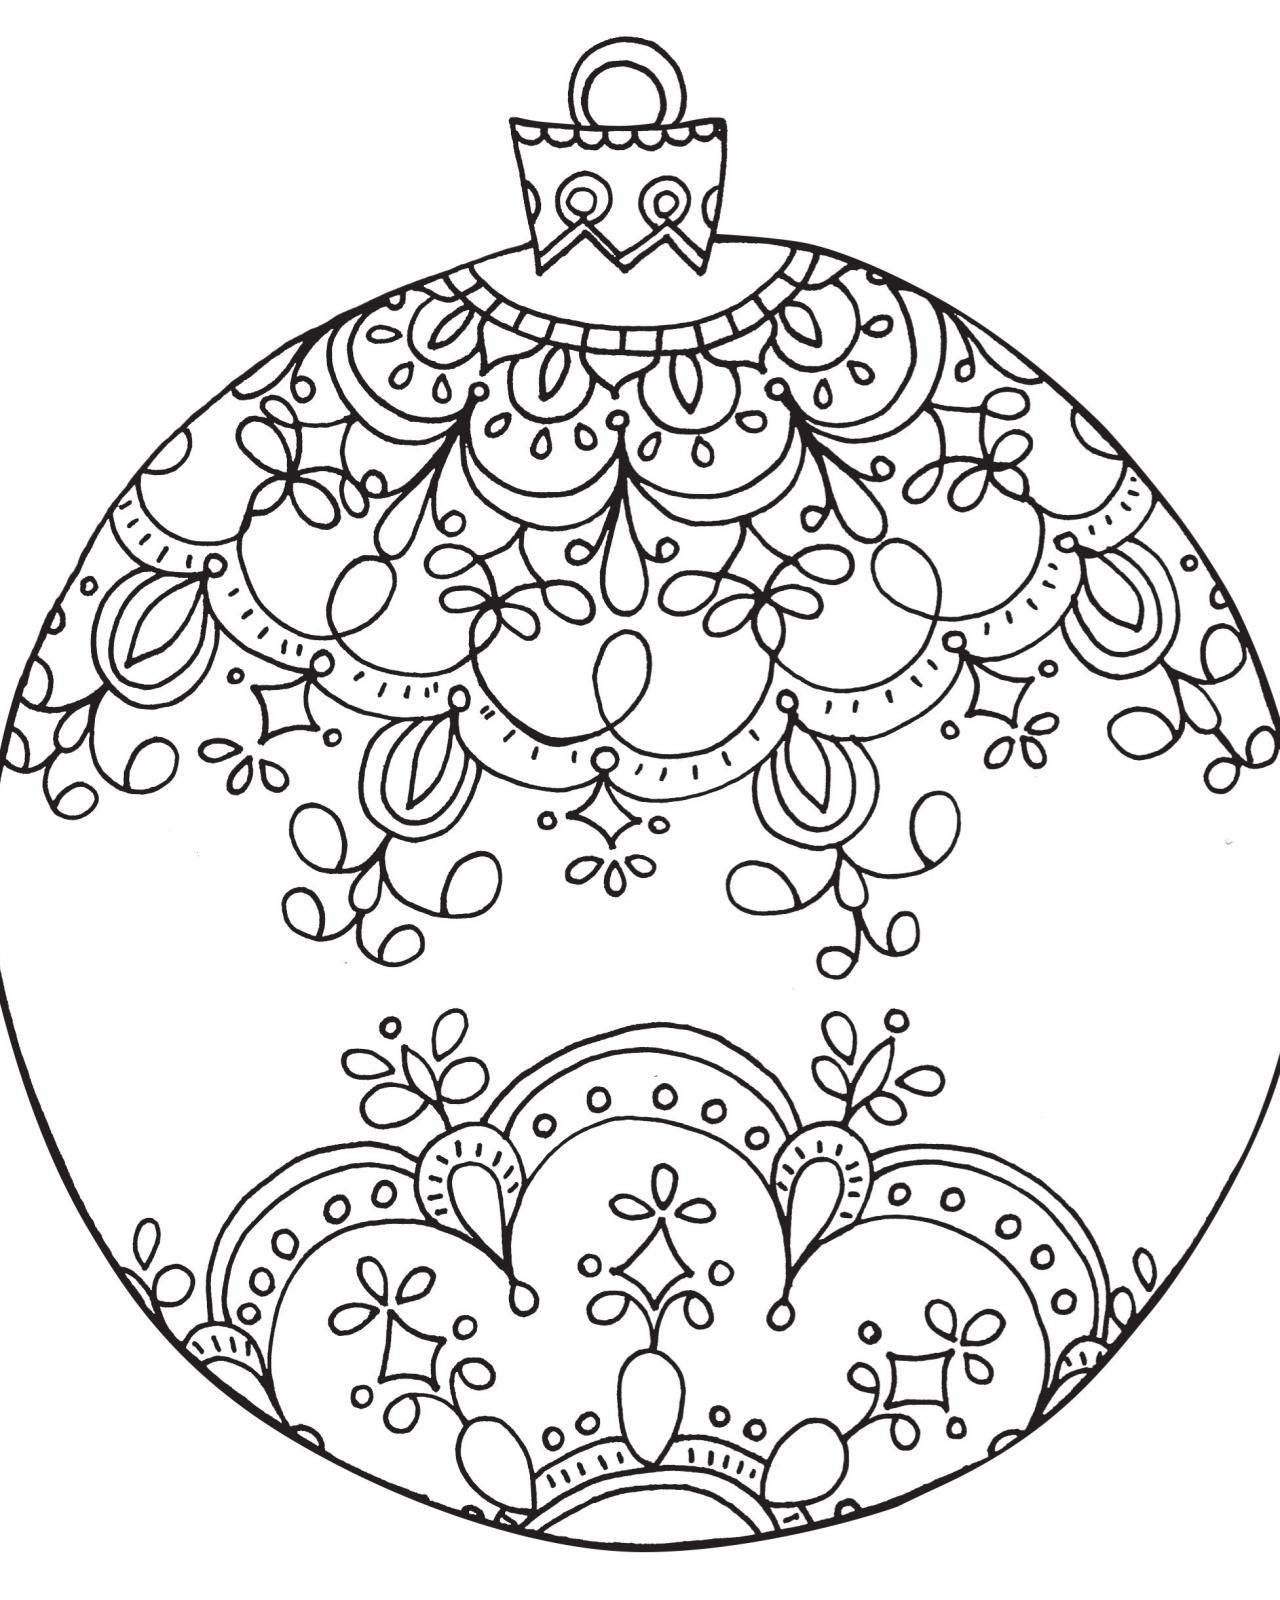 Christmas Coloring Mandala With Free Printable Pages For Adults